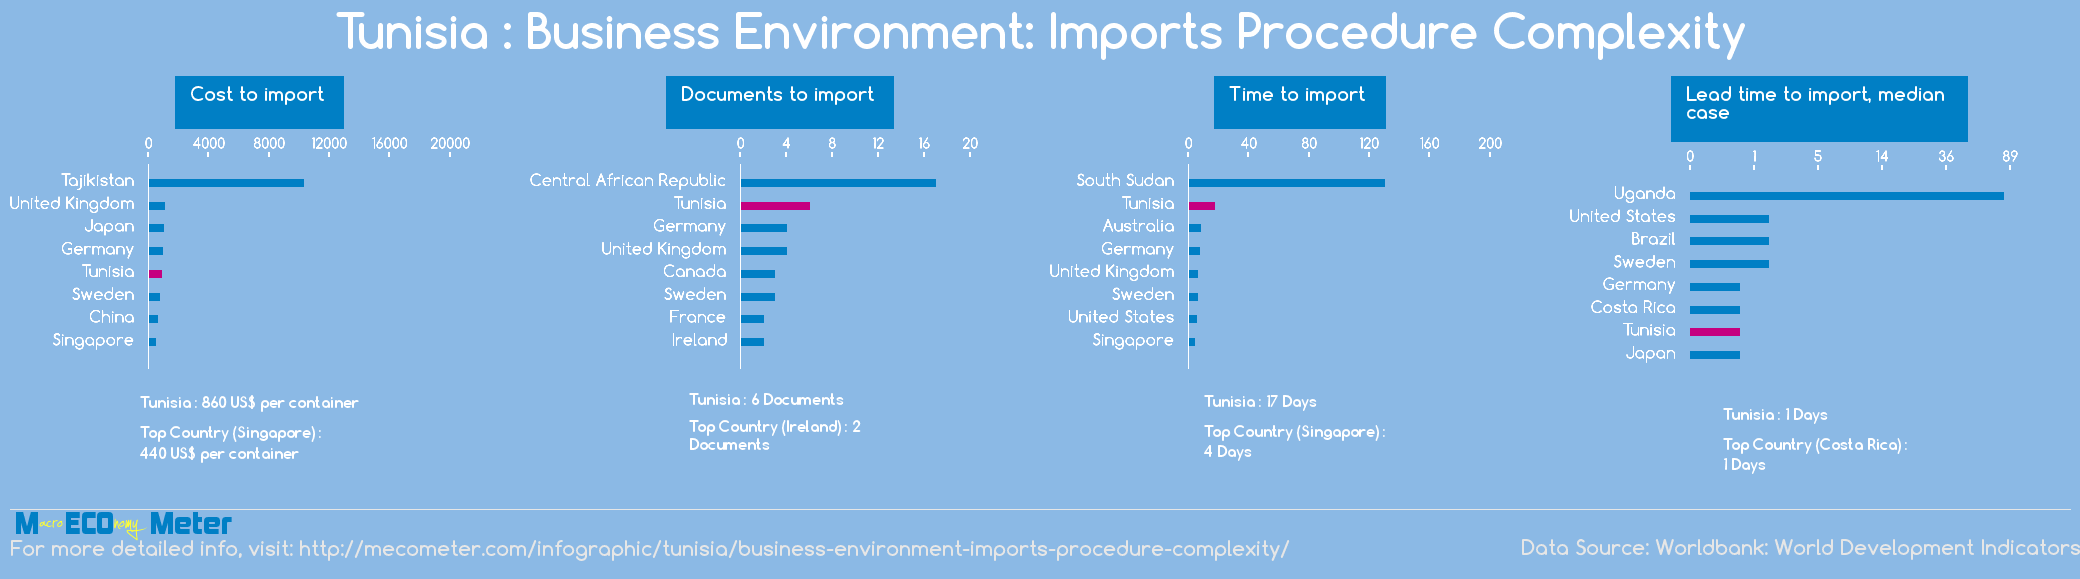 Tunisia : Business Environment: Imports Procedure Complexity